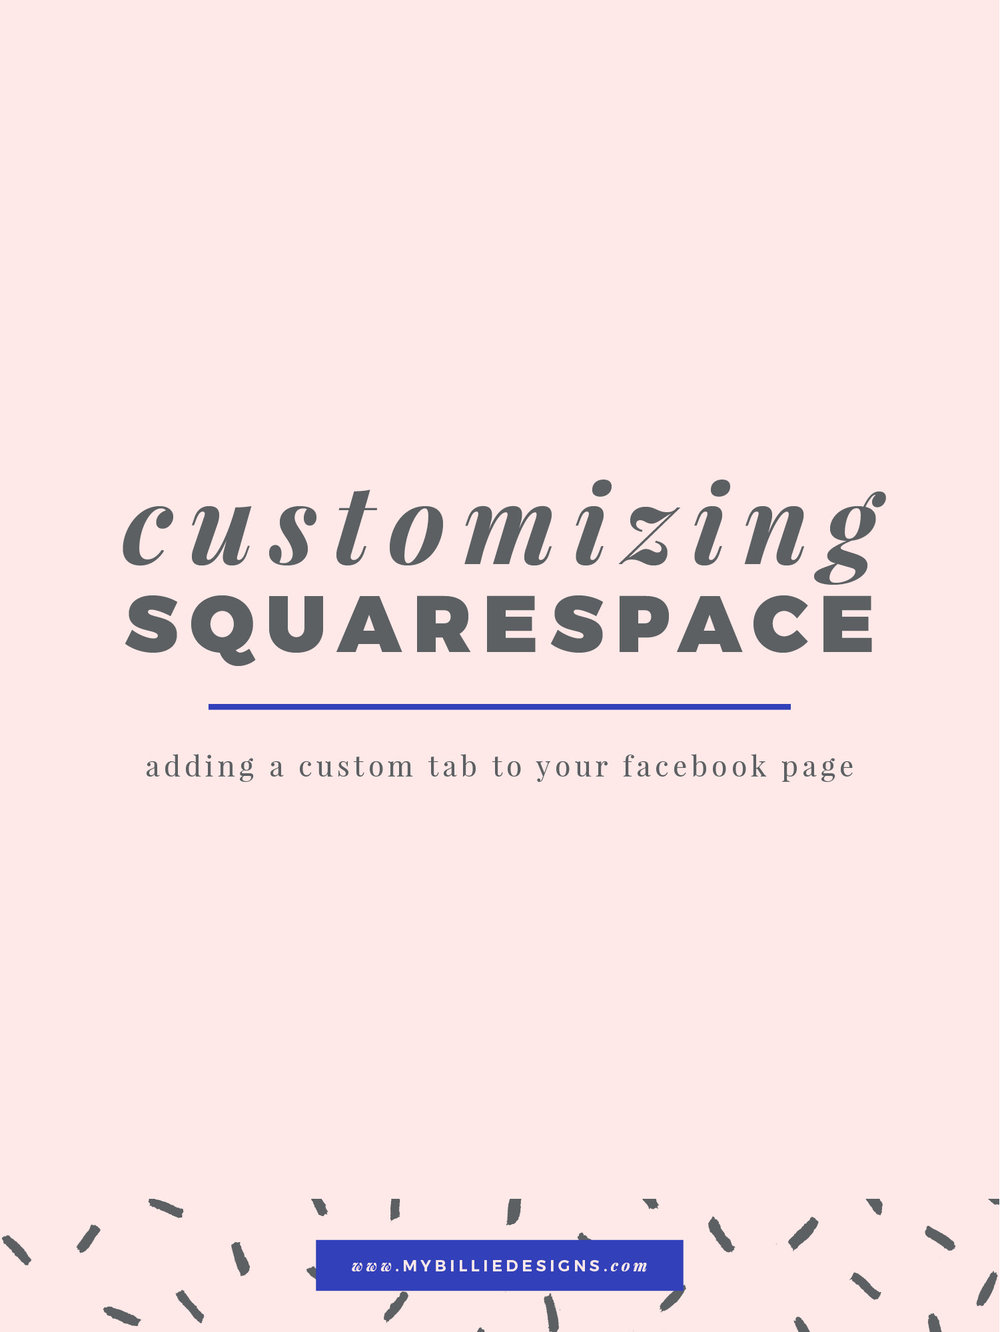 How to add a custom tab to your business's Facebook page from any page on your Squarespace website. Click through to read →